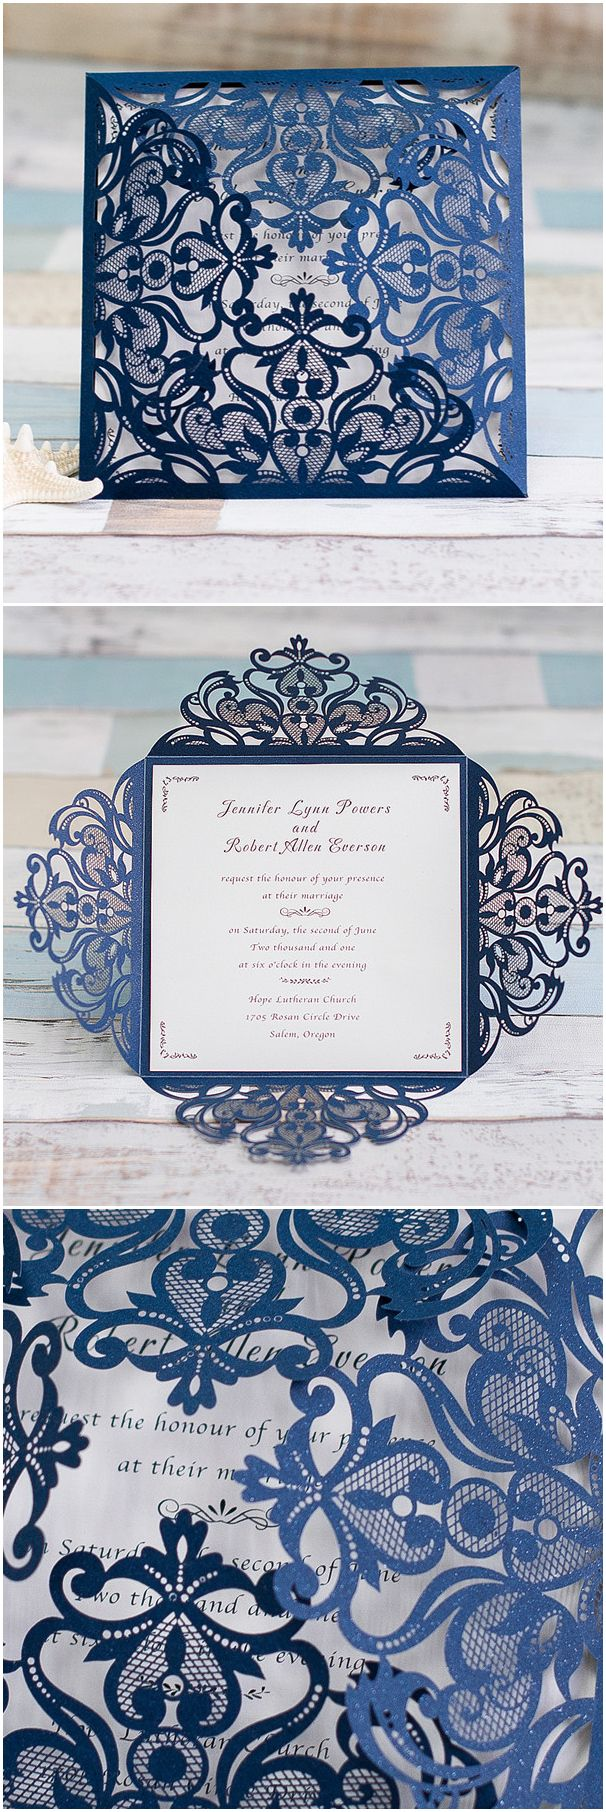 160 Best Laser Cut Wedding Invitations Images On Pinterest Laser